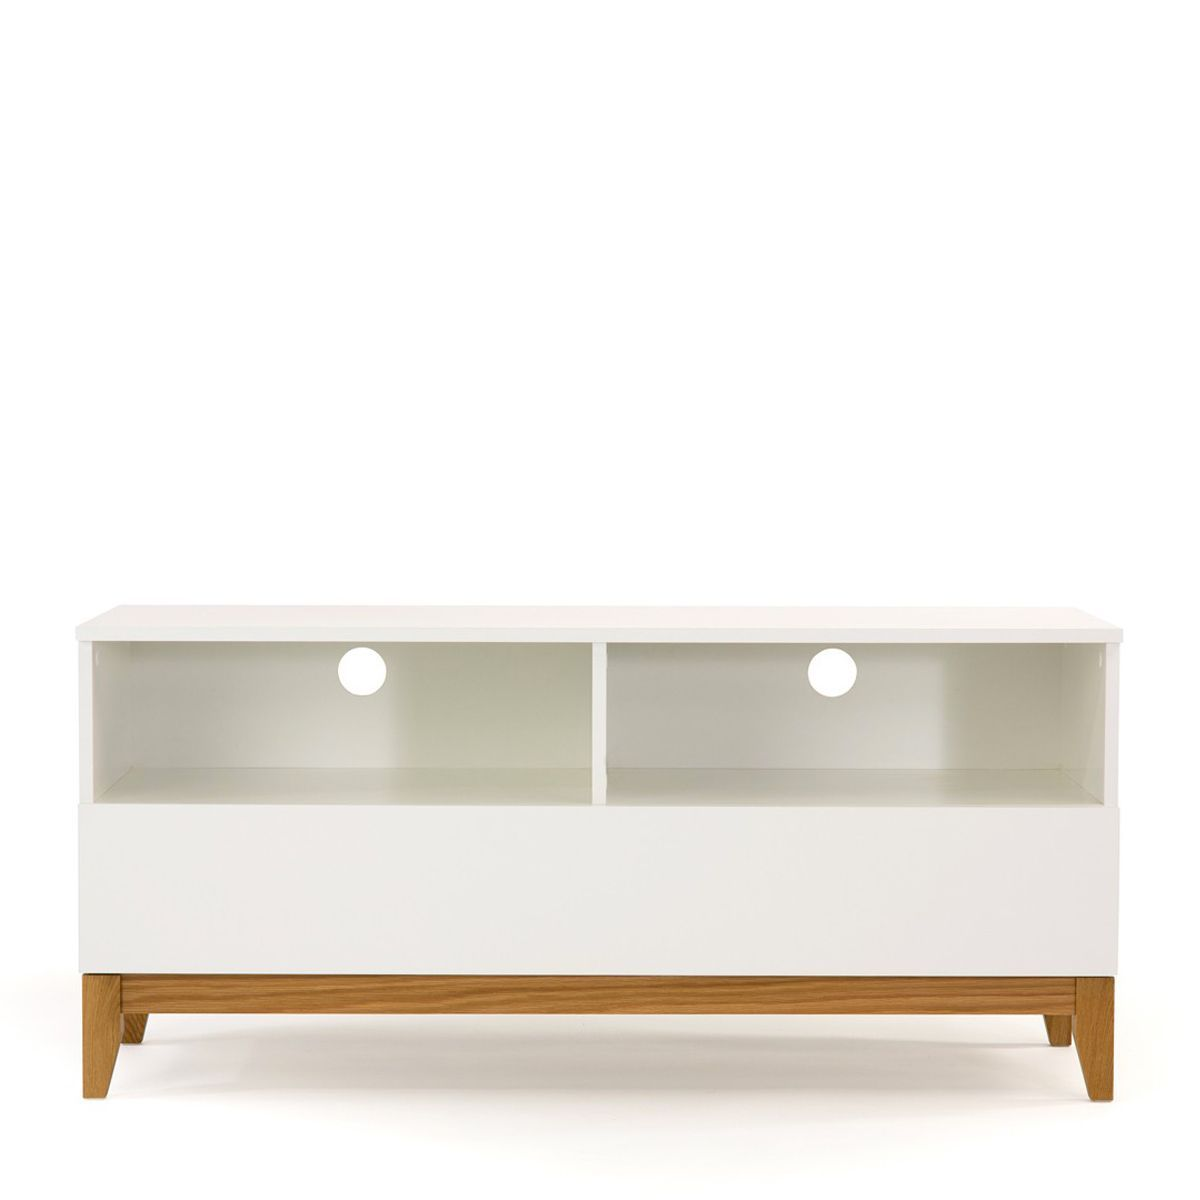 meuble tv design scandinave blanco wide | tvs, design and drawers - Meuble Tv Design Scandinave